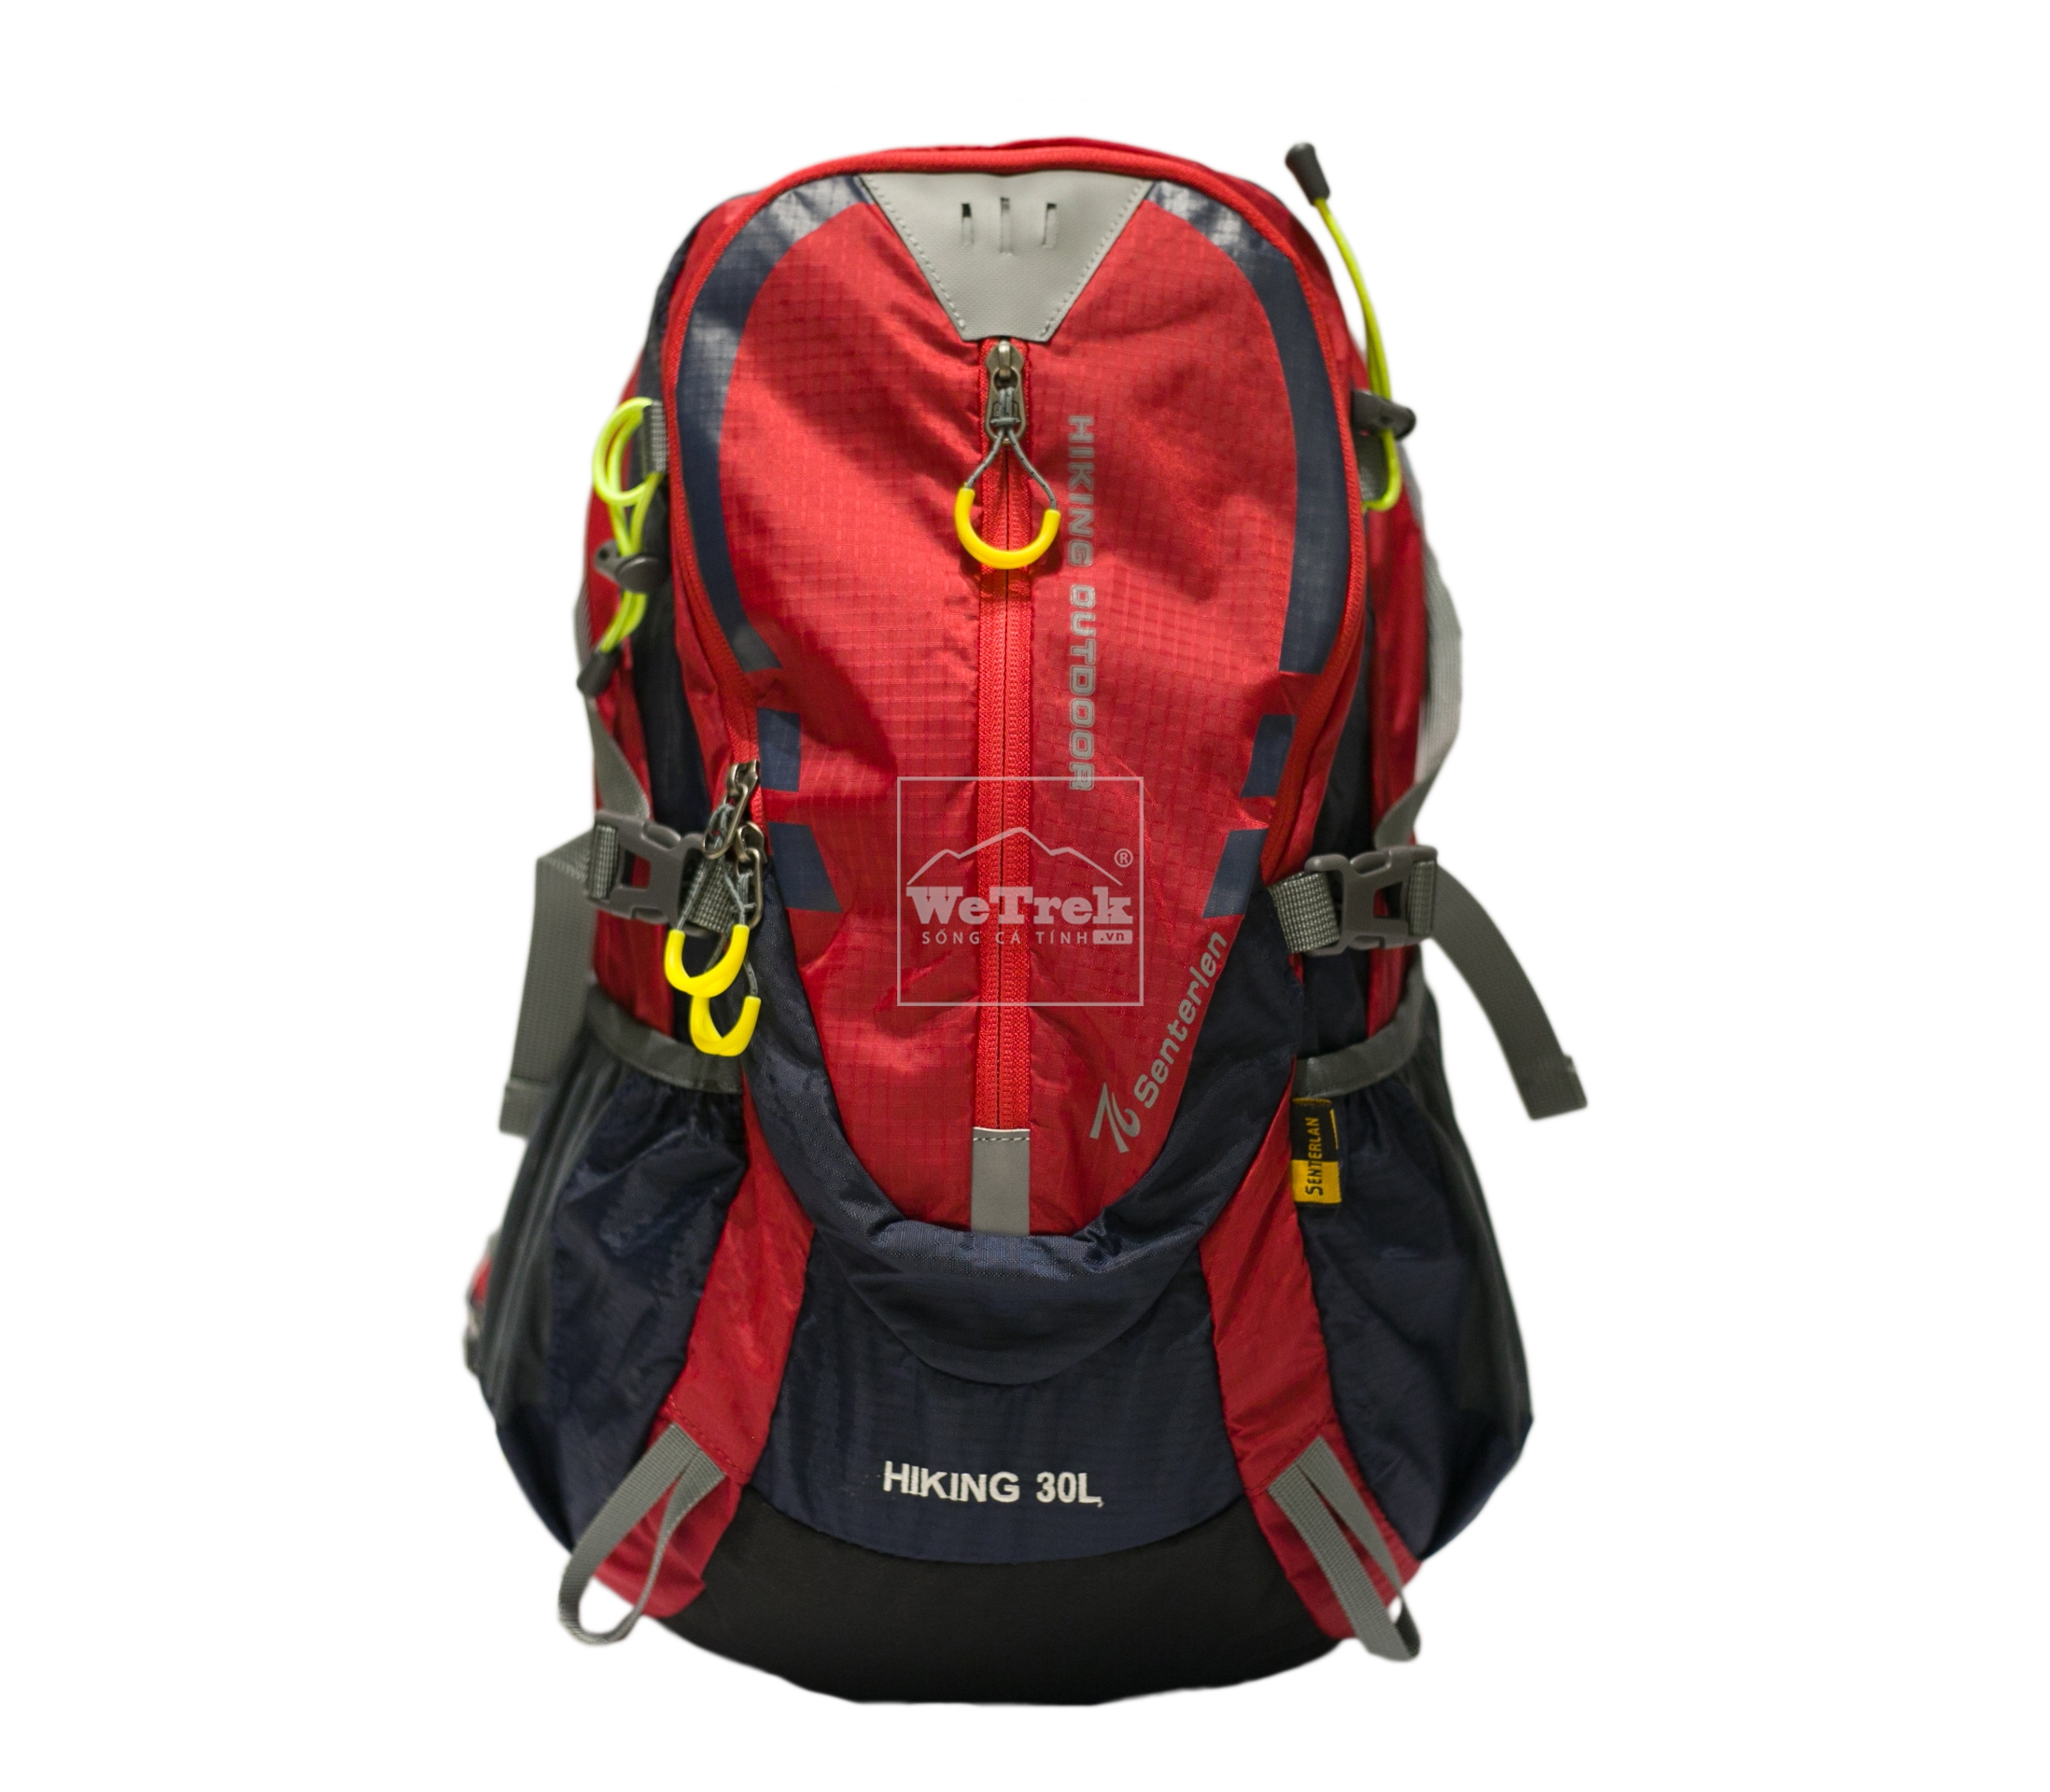 Balo leo núi Senterlan Hiking Outdoor S2316 - 8451 Đỏ